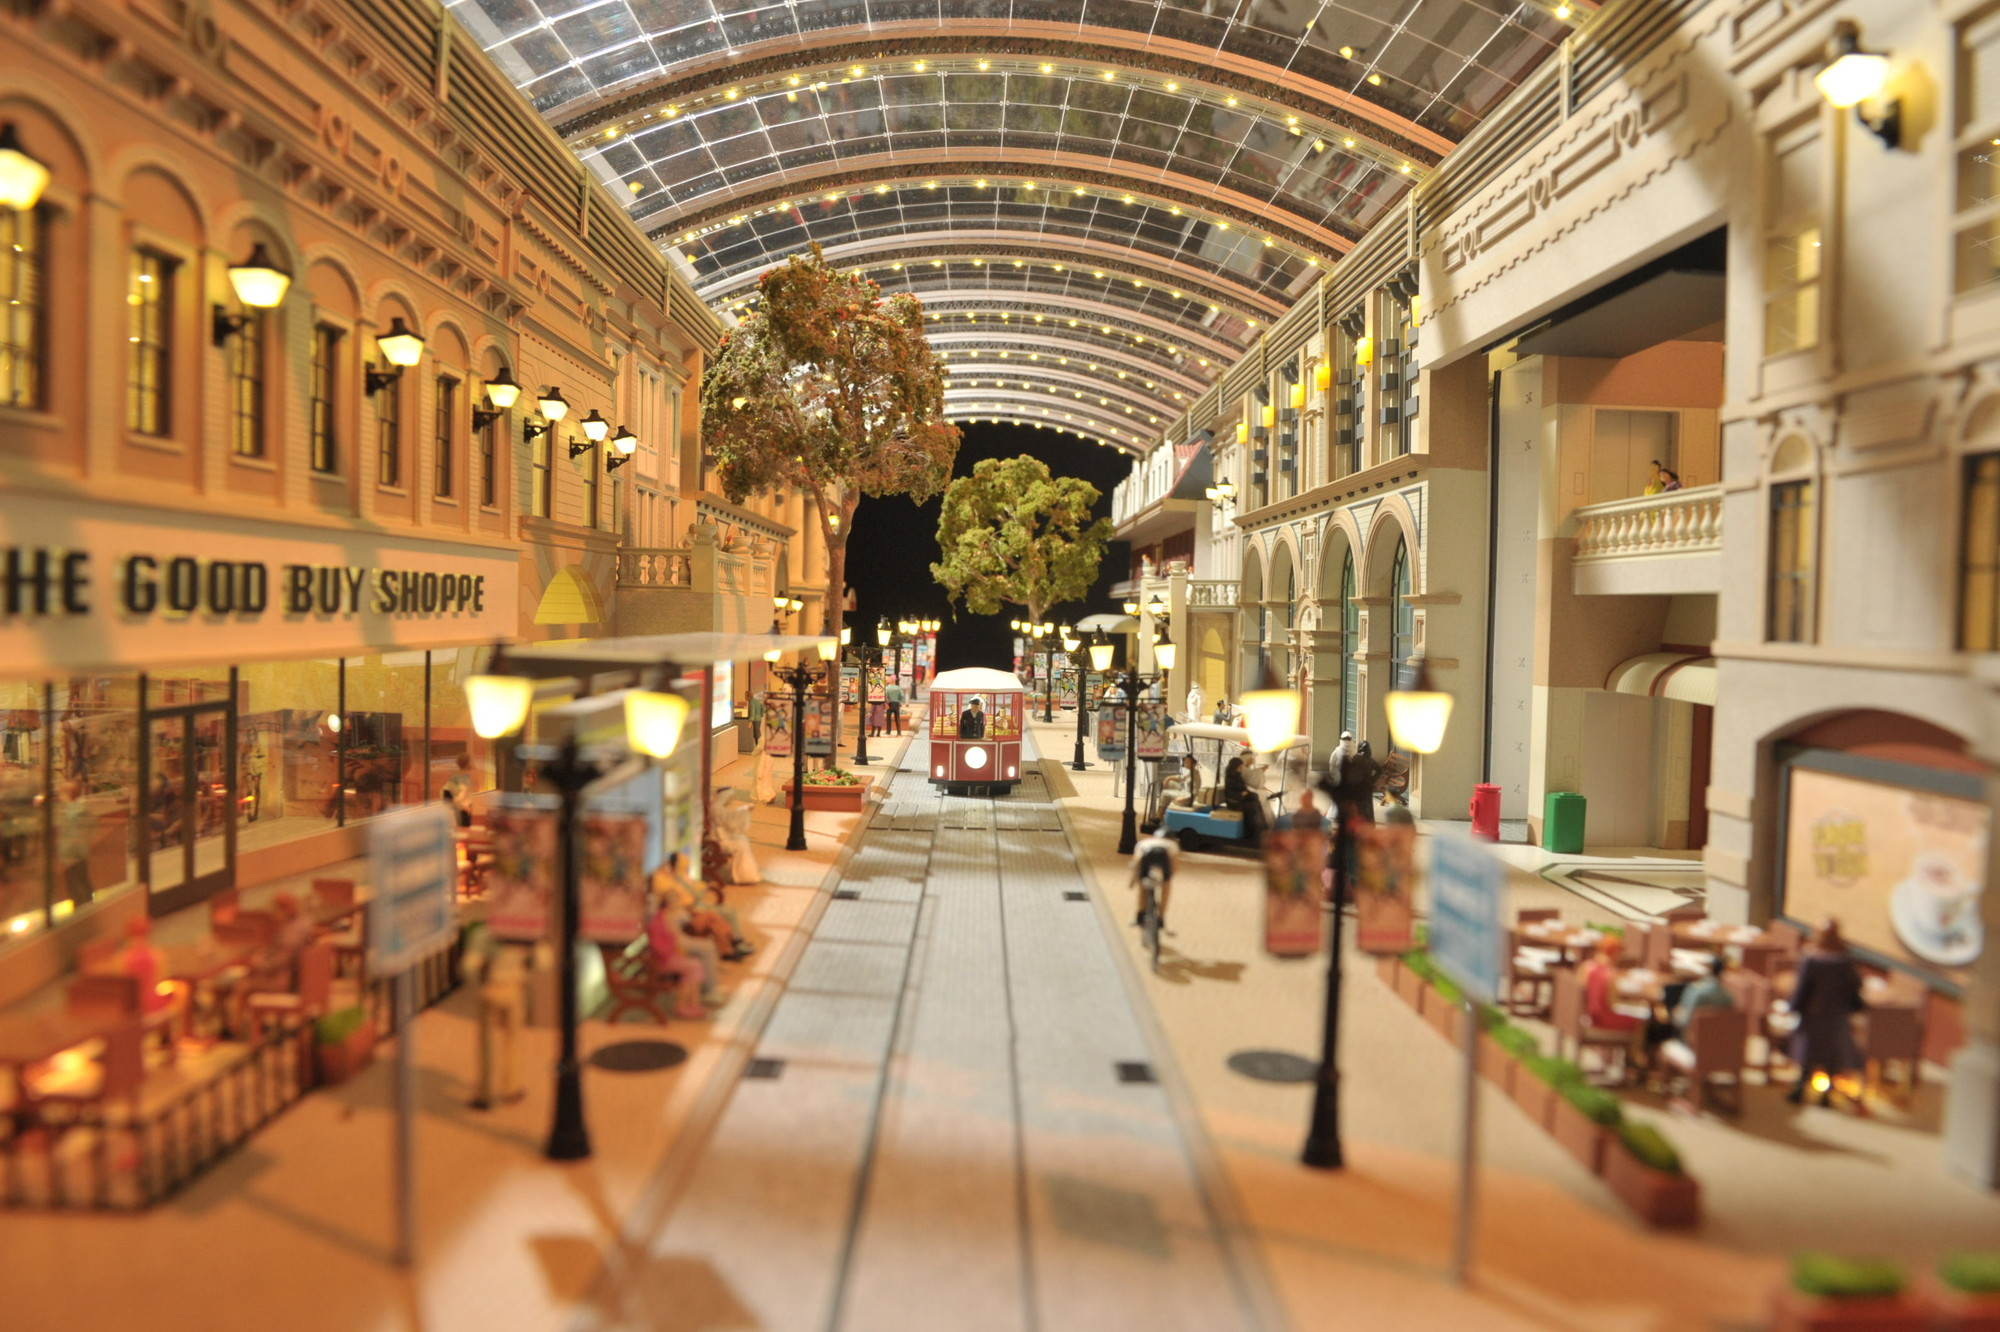 Trams within the 7km temperature-controlled retail street network. Image Courtesy of Dubai Holding